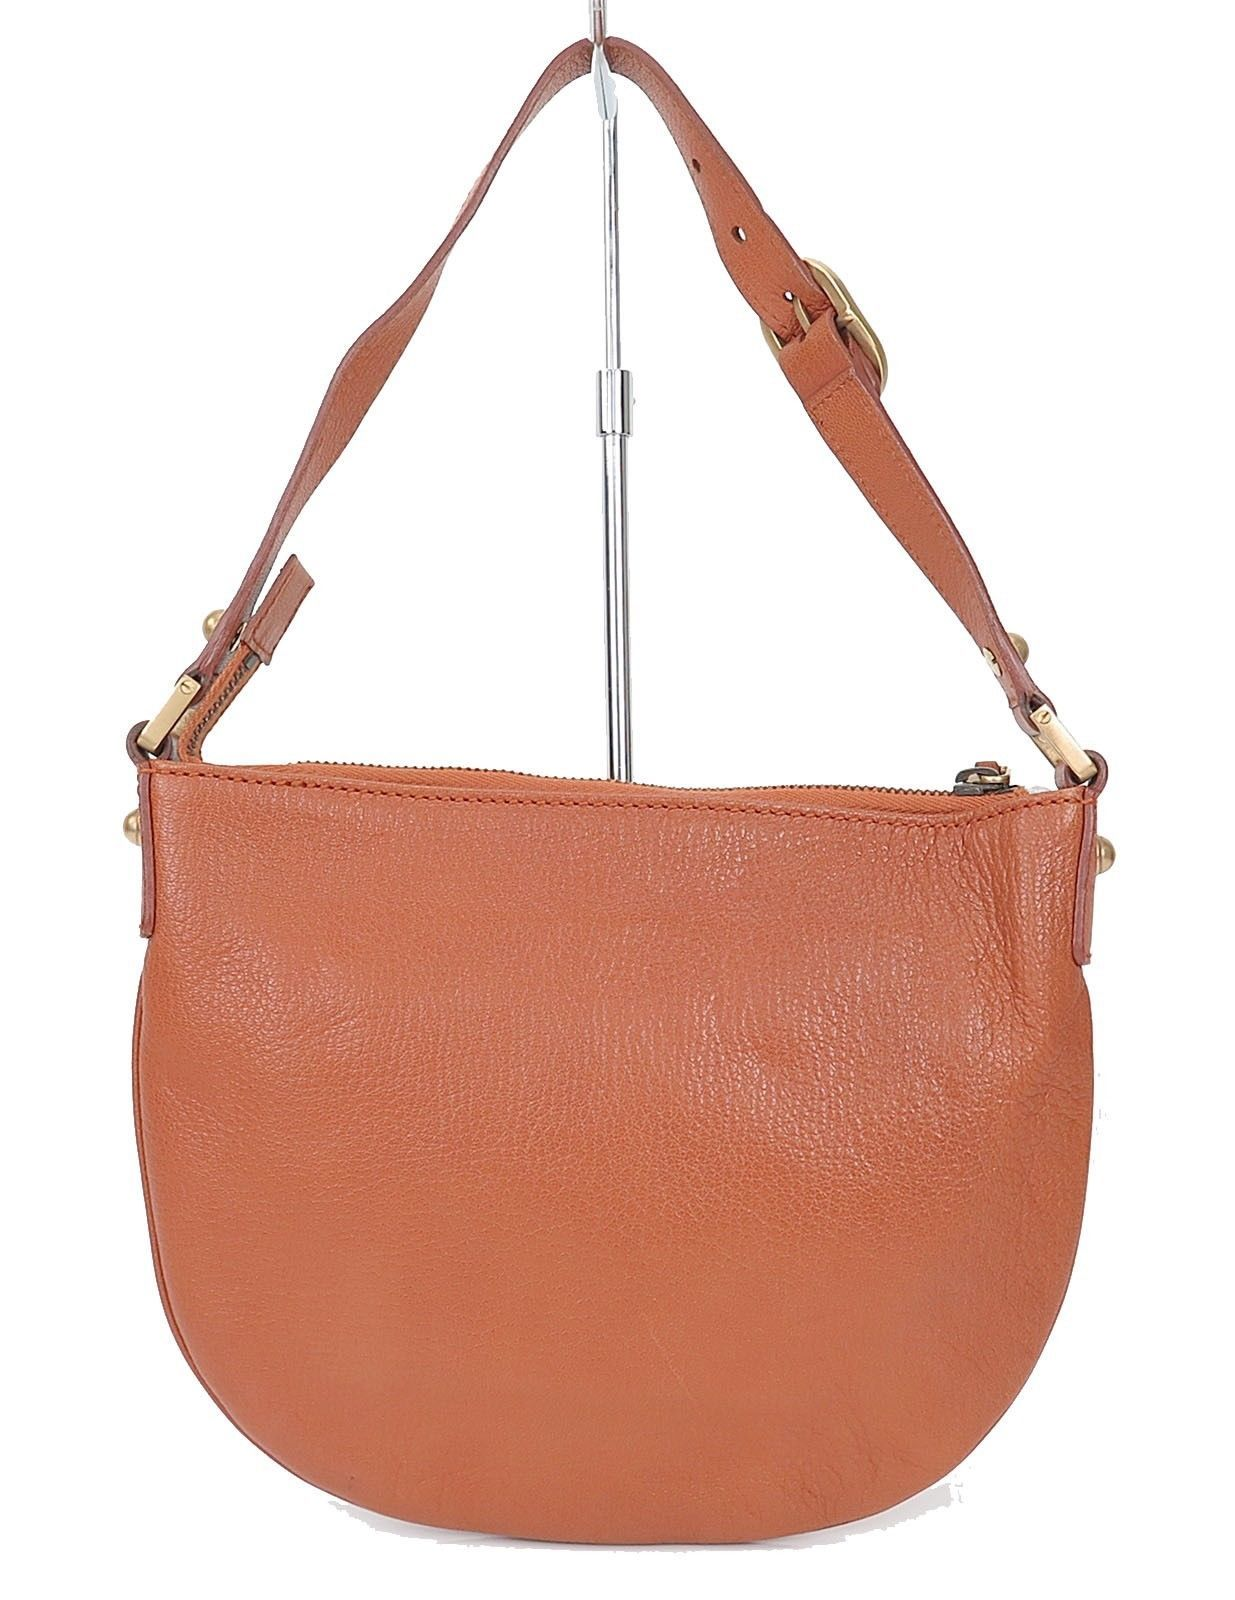 ae7a7bf79ebc1f ... Authentic GUCCI Blondie Brown Leather Hand Shoulder Bag Purse #25503 ...